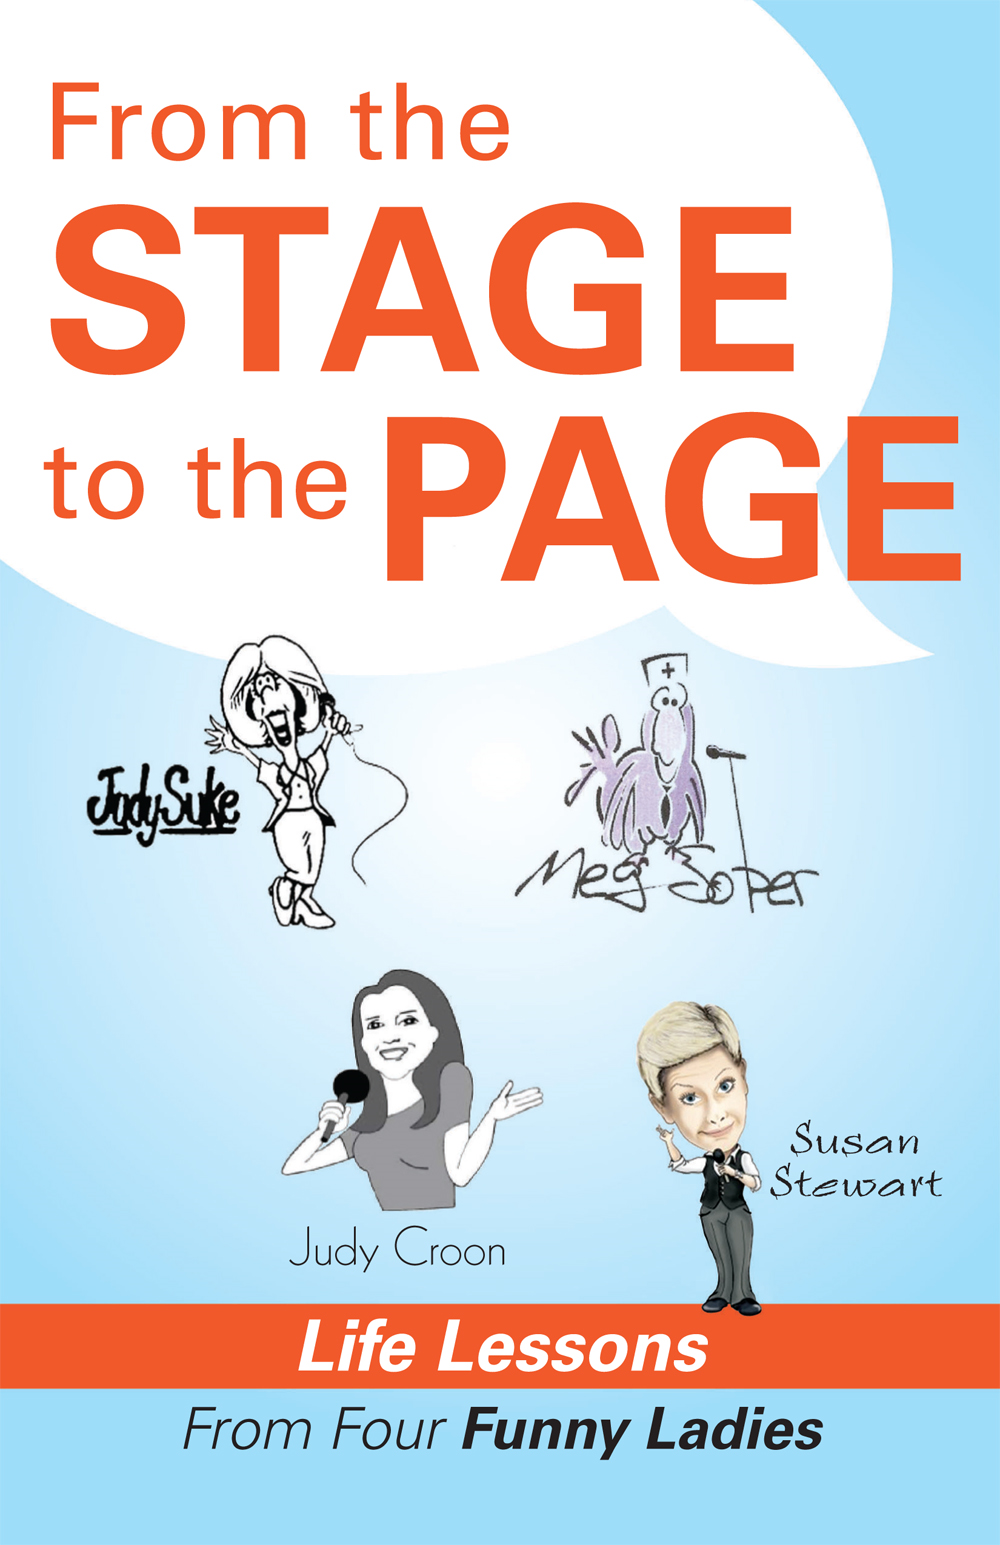 From the Stage to the Page